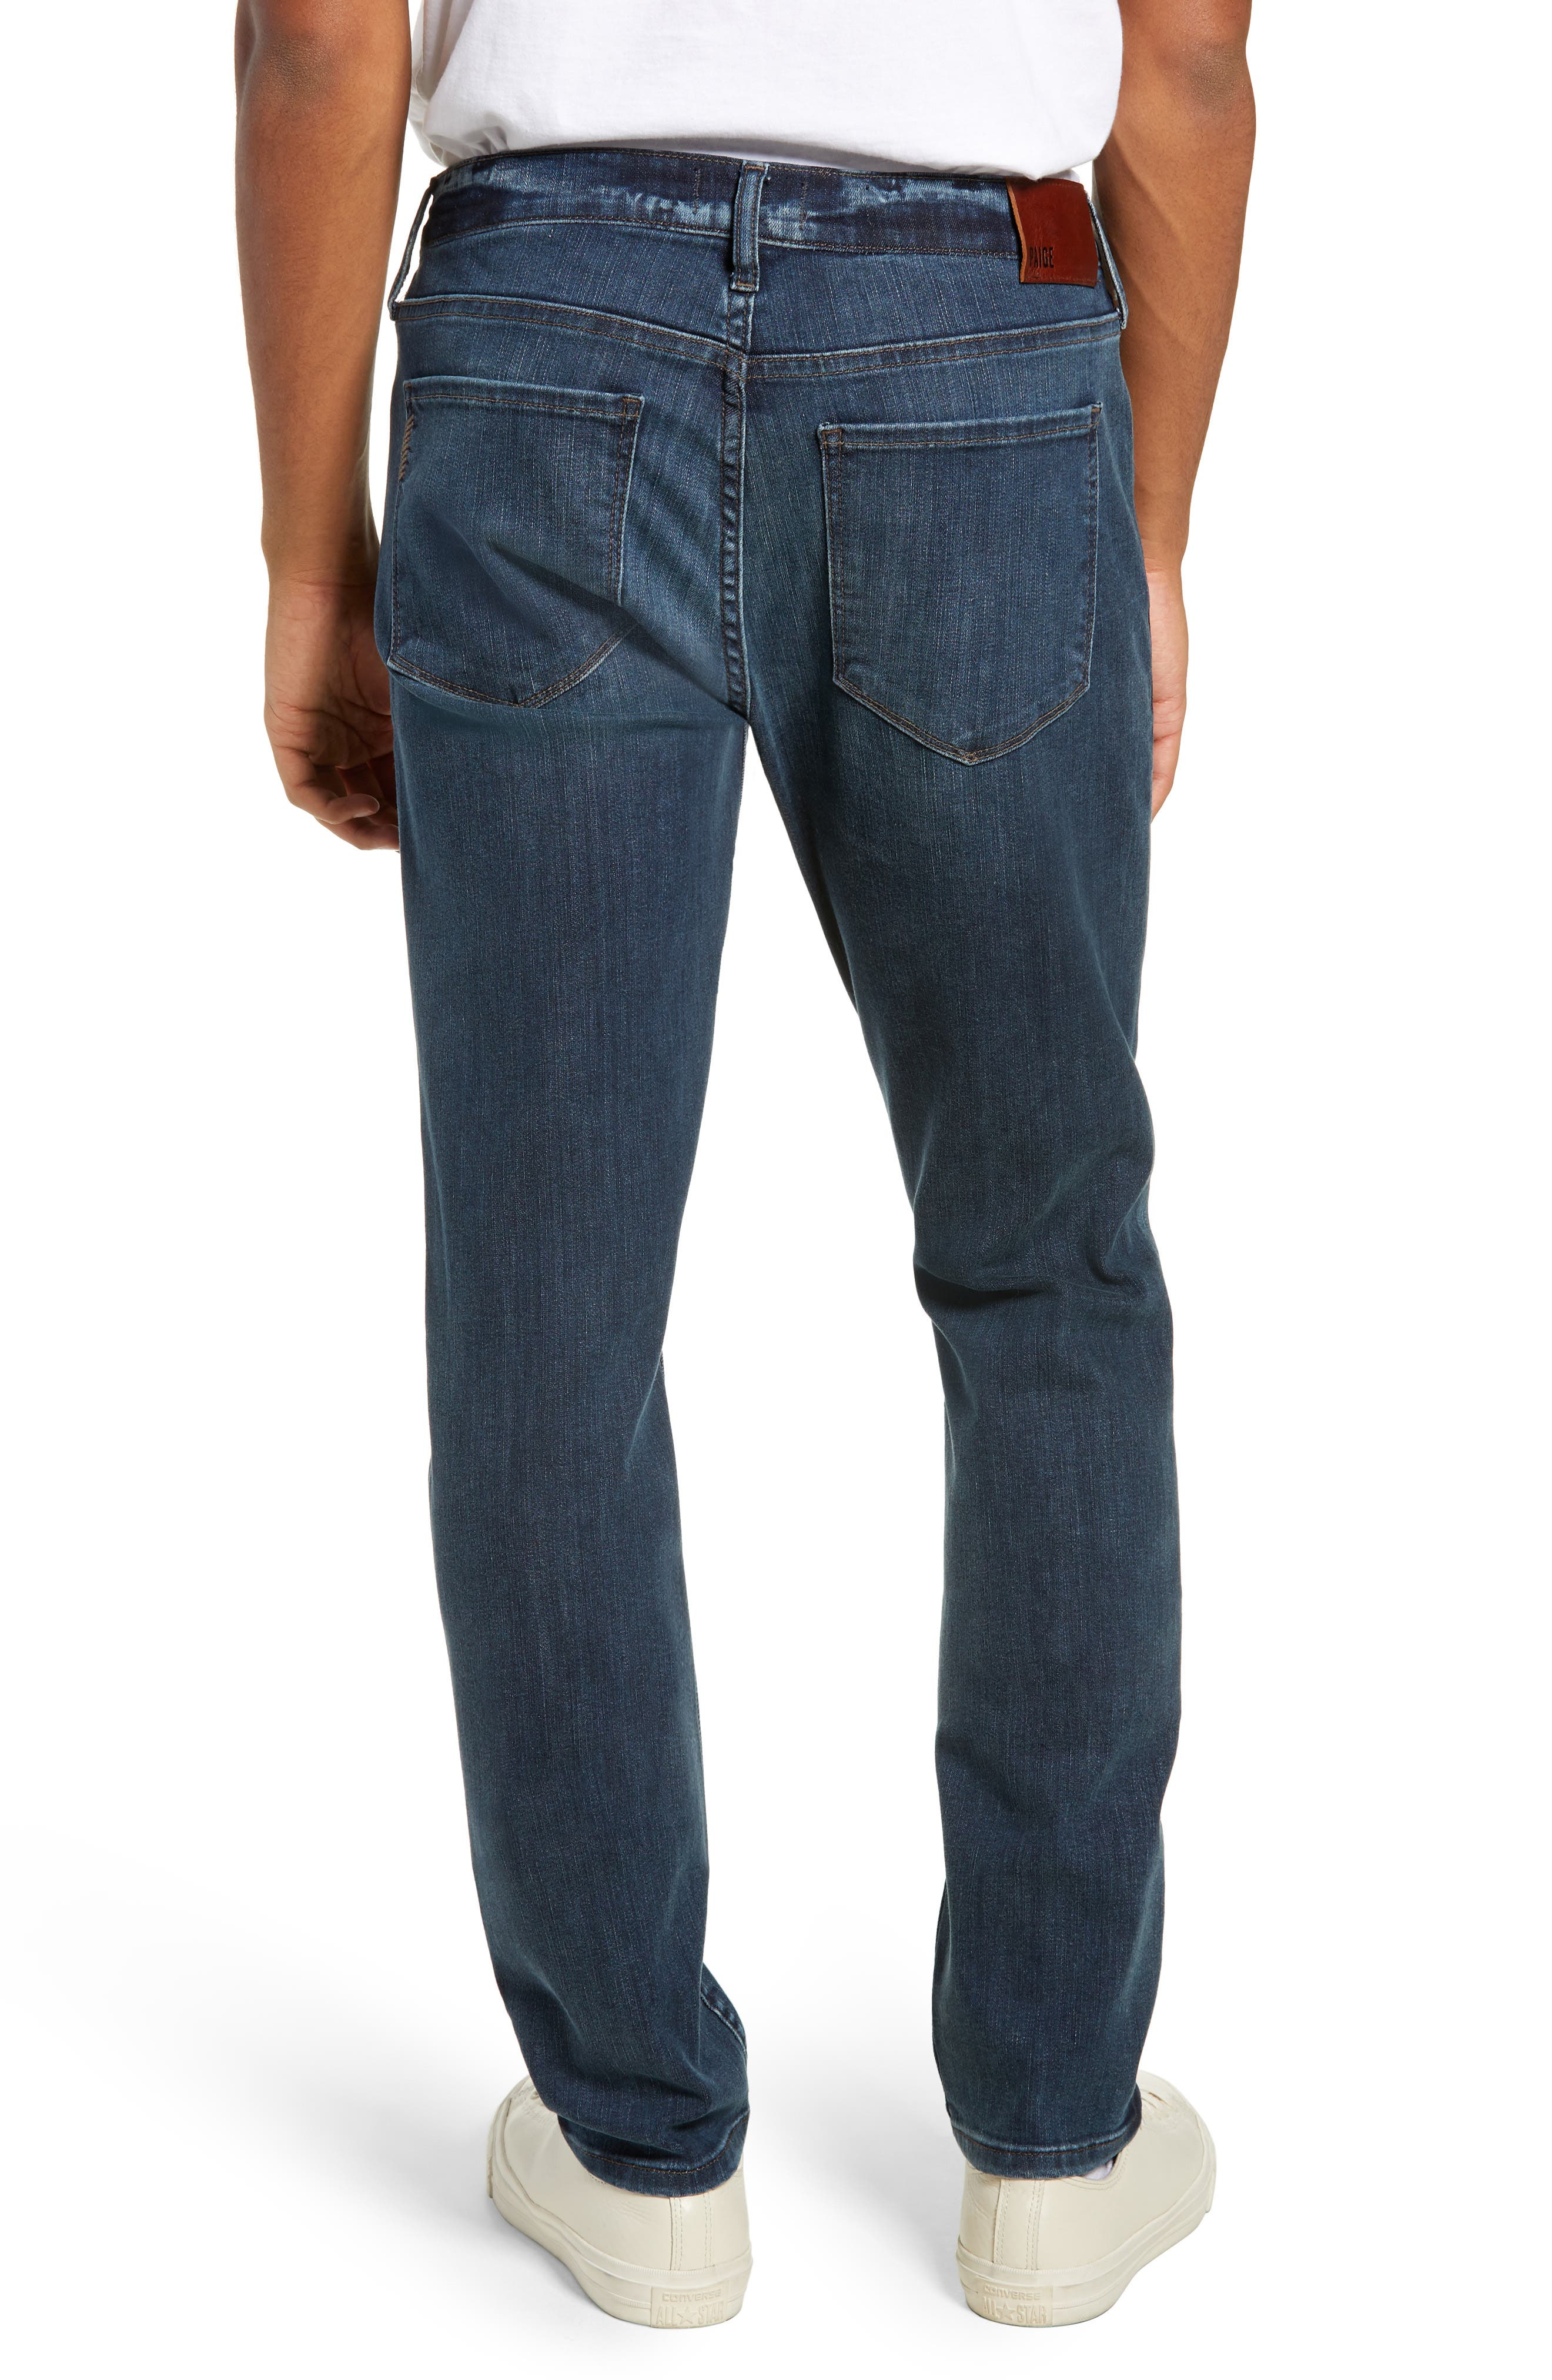 PAIGE, Transcend Vintage Federal Slim Straight Leg Jeans, Alternate thumbnail 2, color, ROARKE